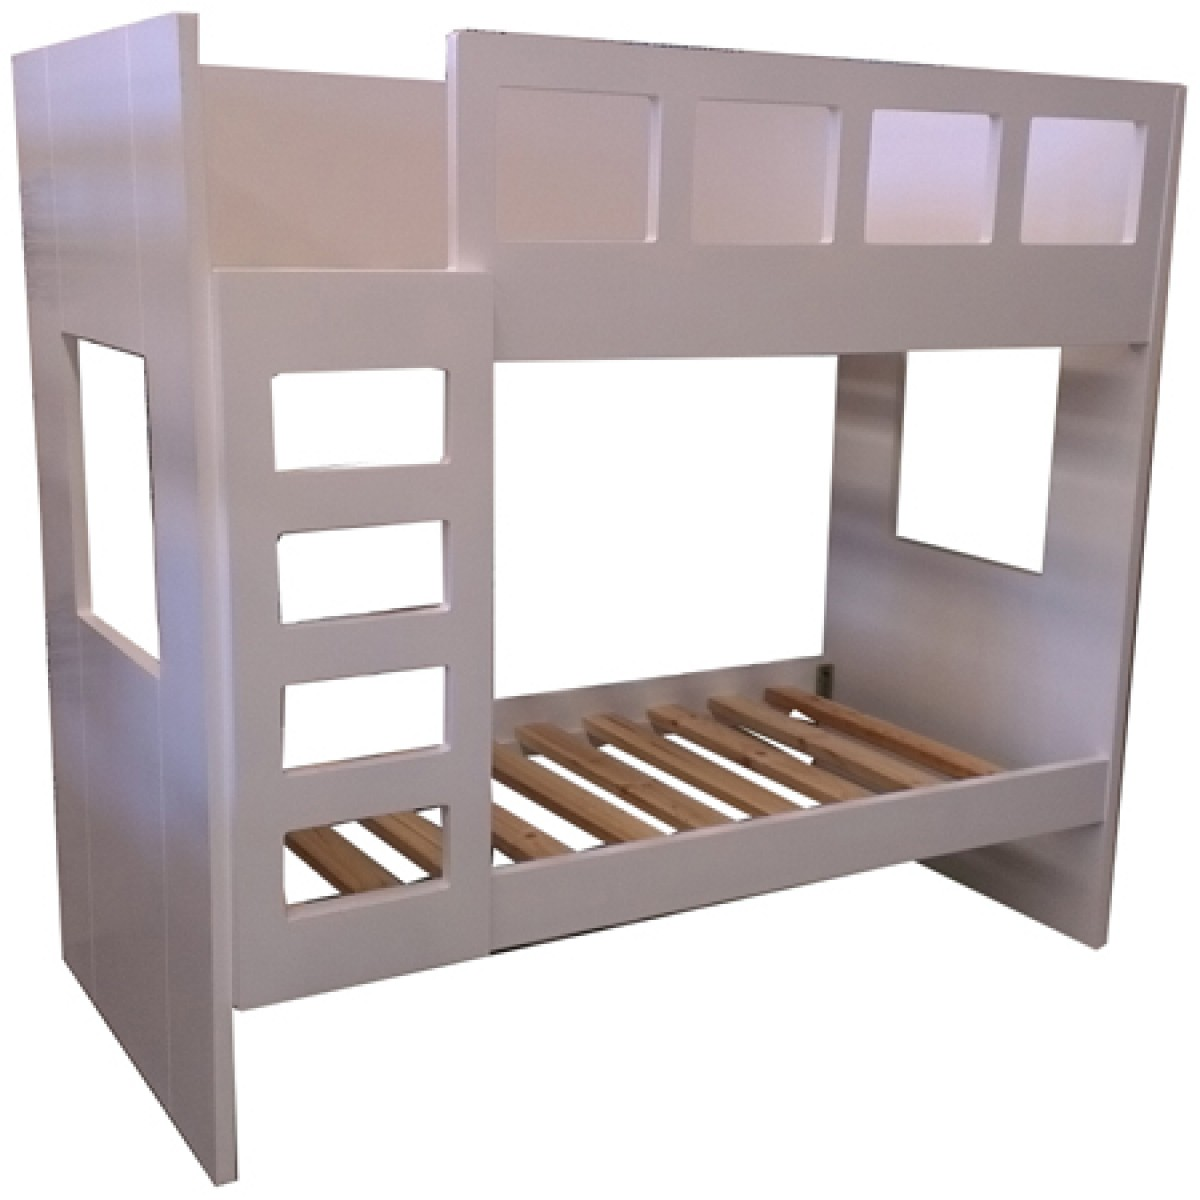 Cherry Wood Bunk Beds | Safe Bunk Beds For Toddlers | Modern Bunk Beds